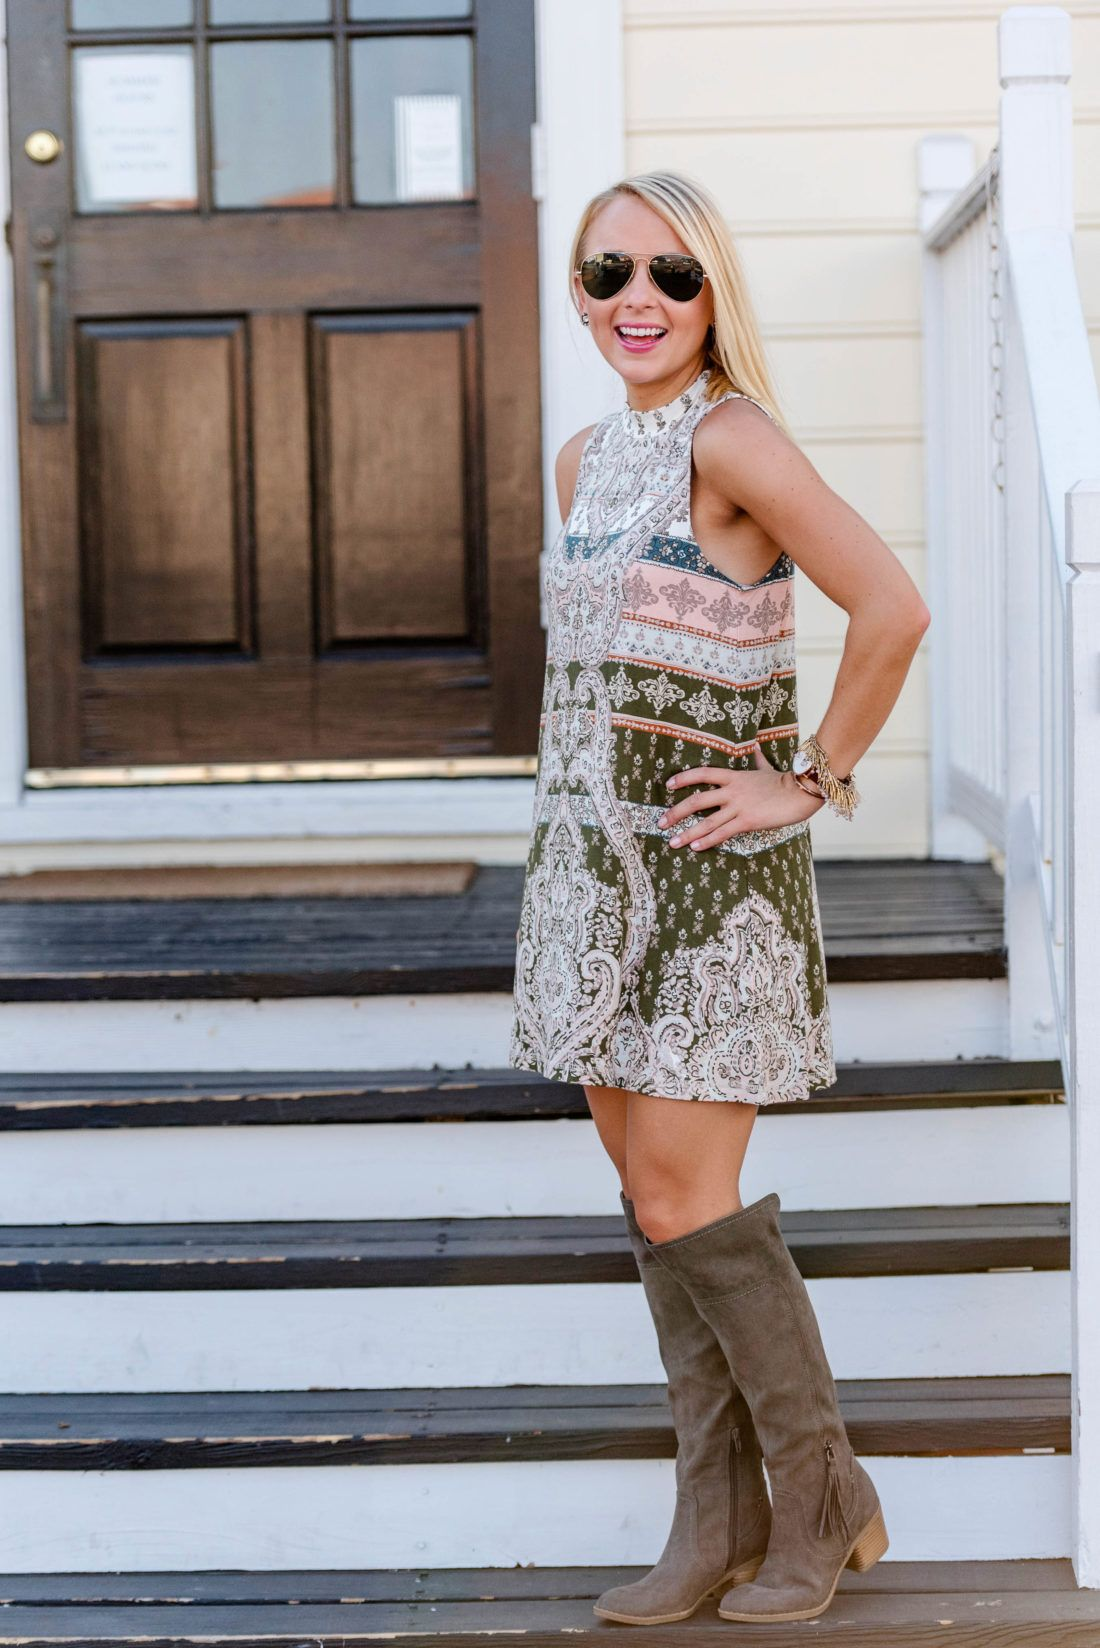 amy-littleson-from-i-believe-in-pink-wearing-transitional-fall-nordstrom-dress-daniel-wellington-watch-and-indigo-rd-boots